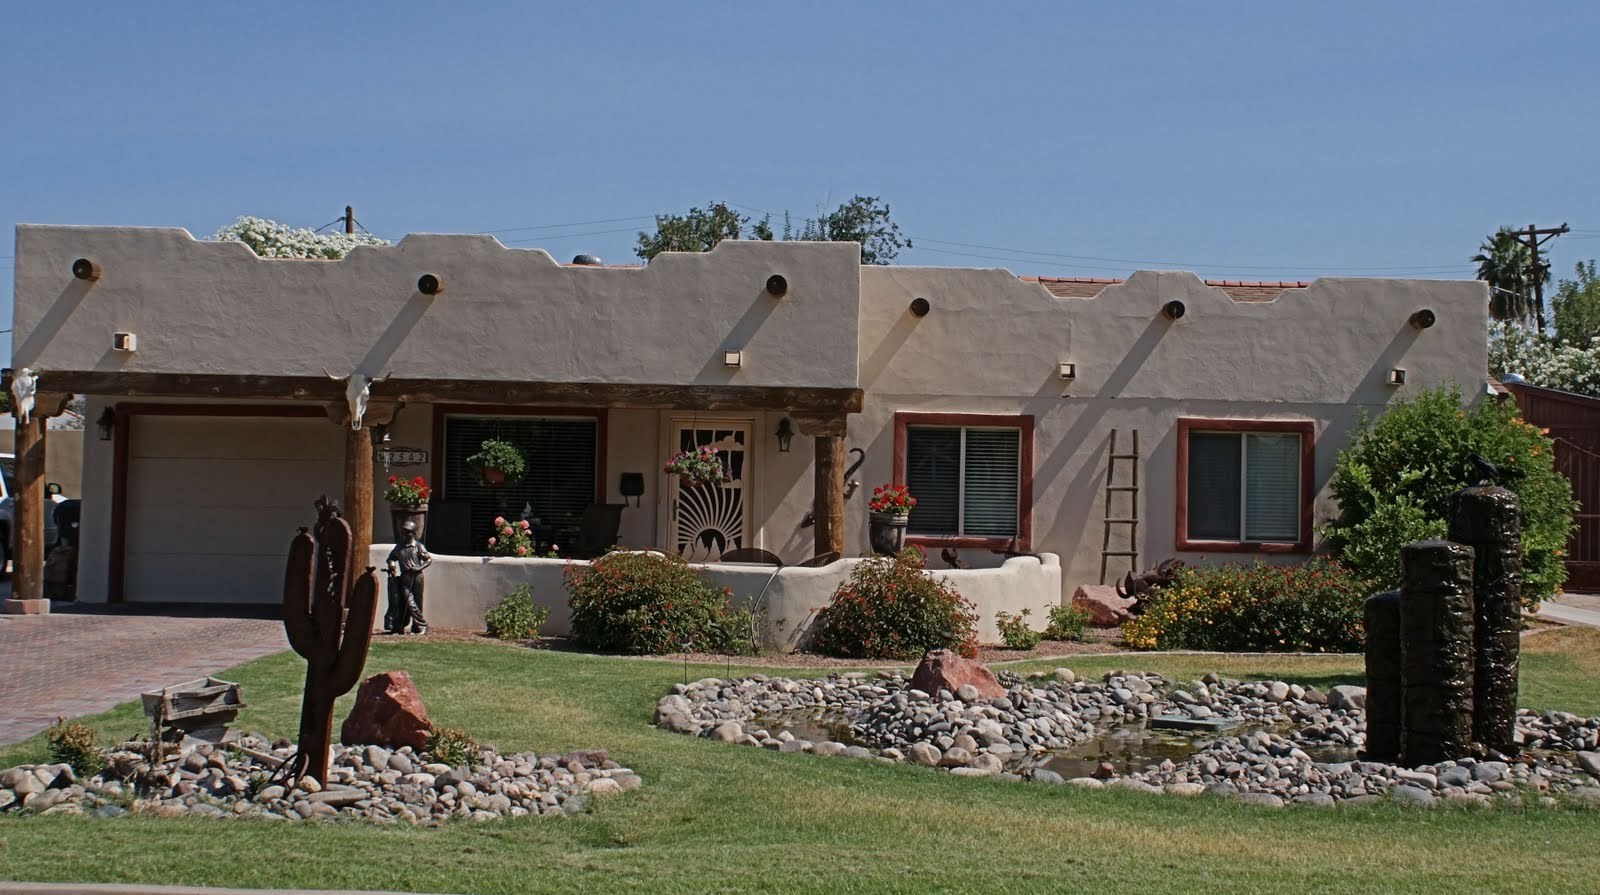 Awesome pueblo style home pictures house plans 16296 for Pueblo style home plans